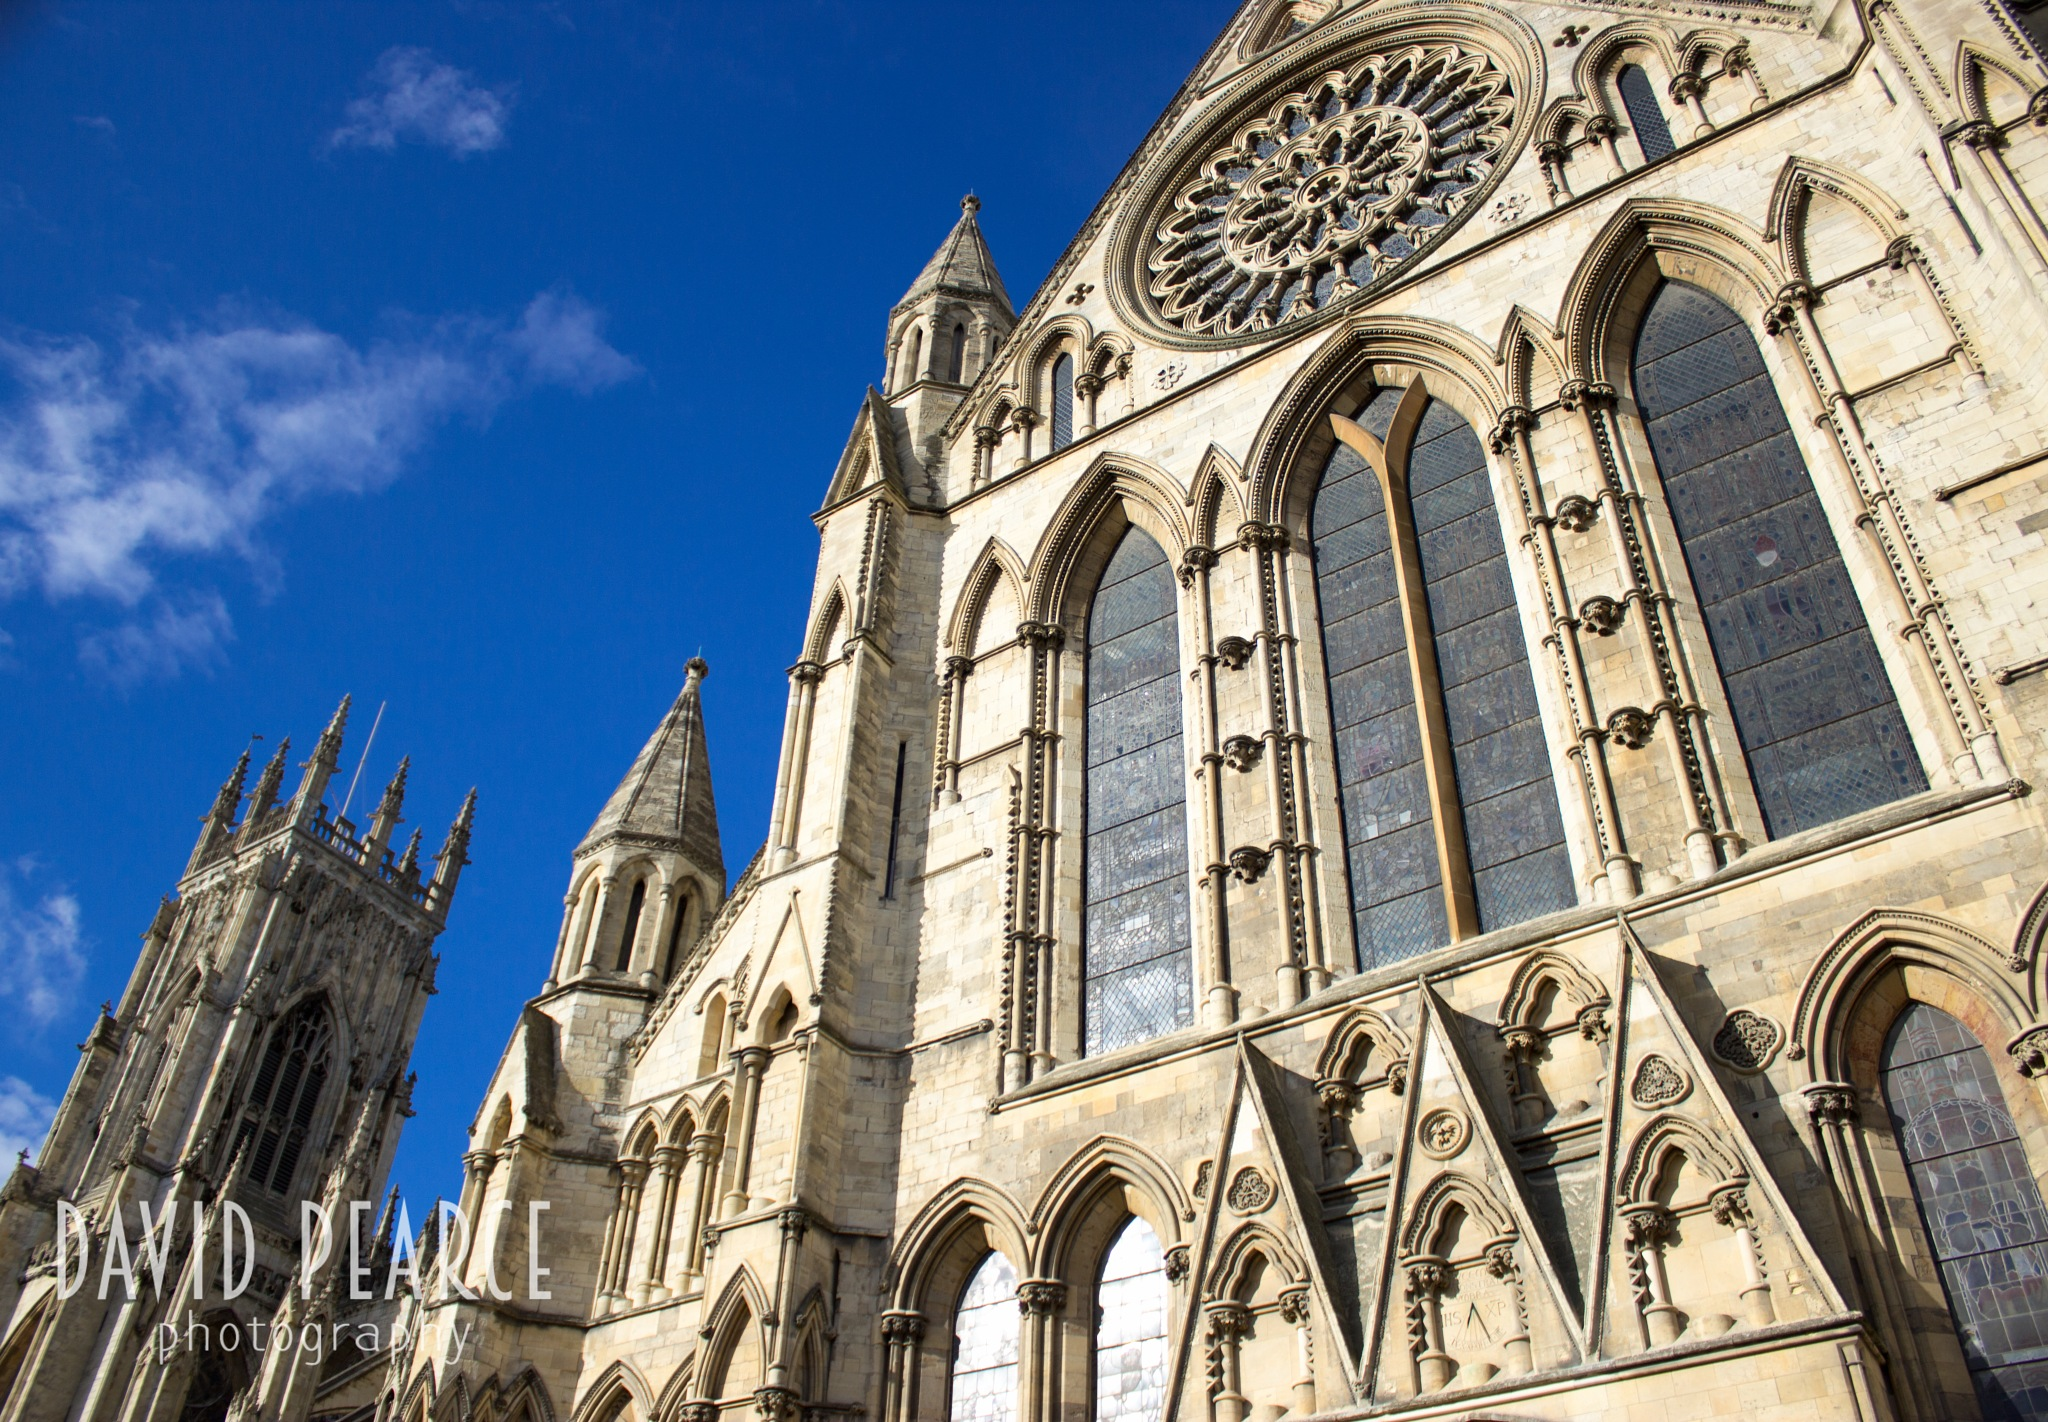 York Minster by David Pearce